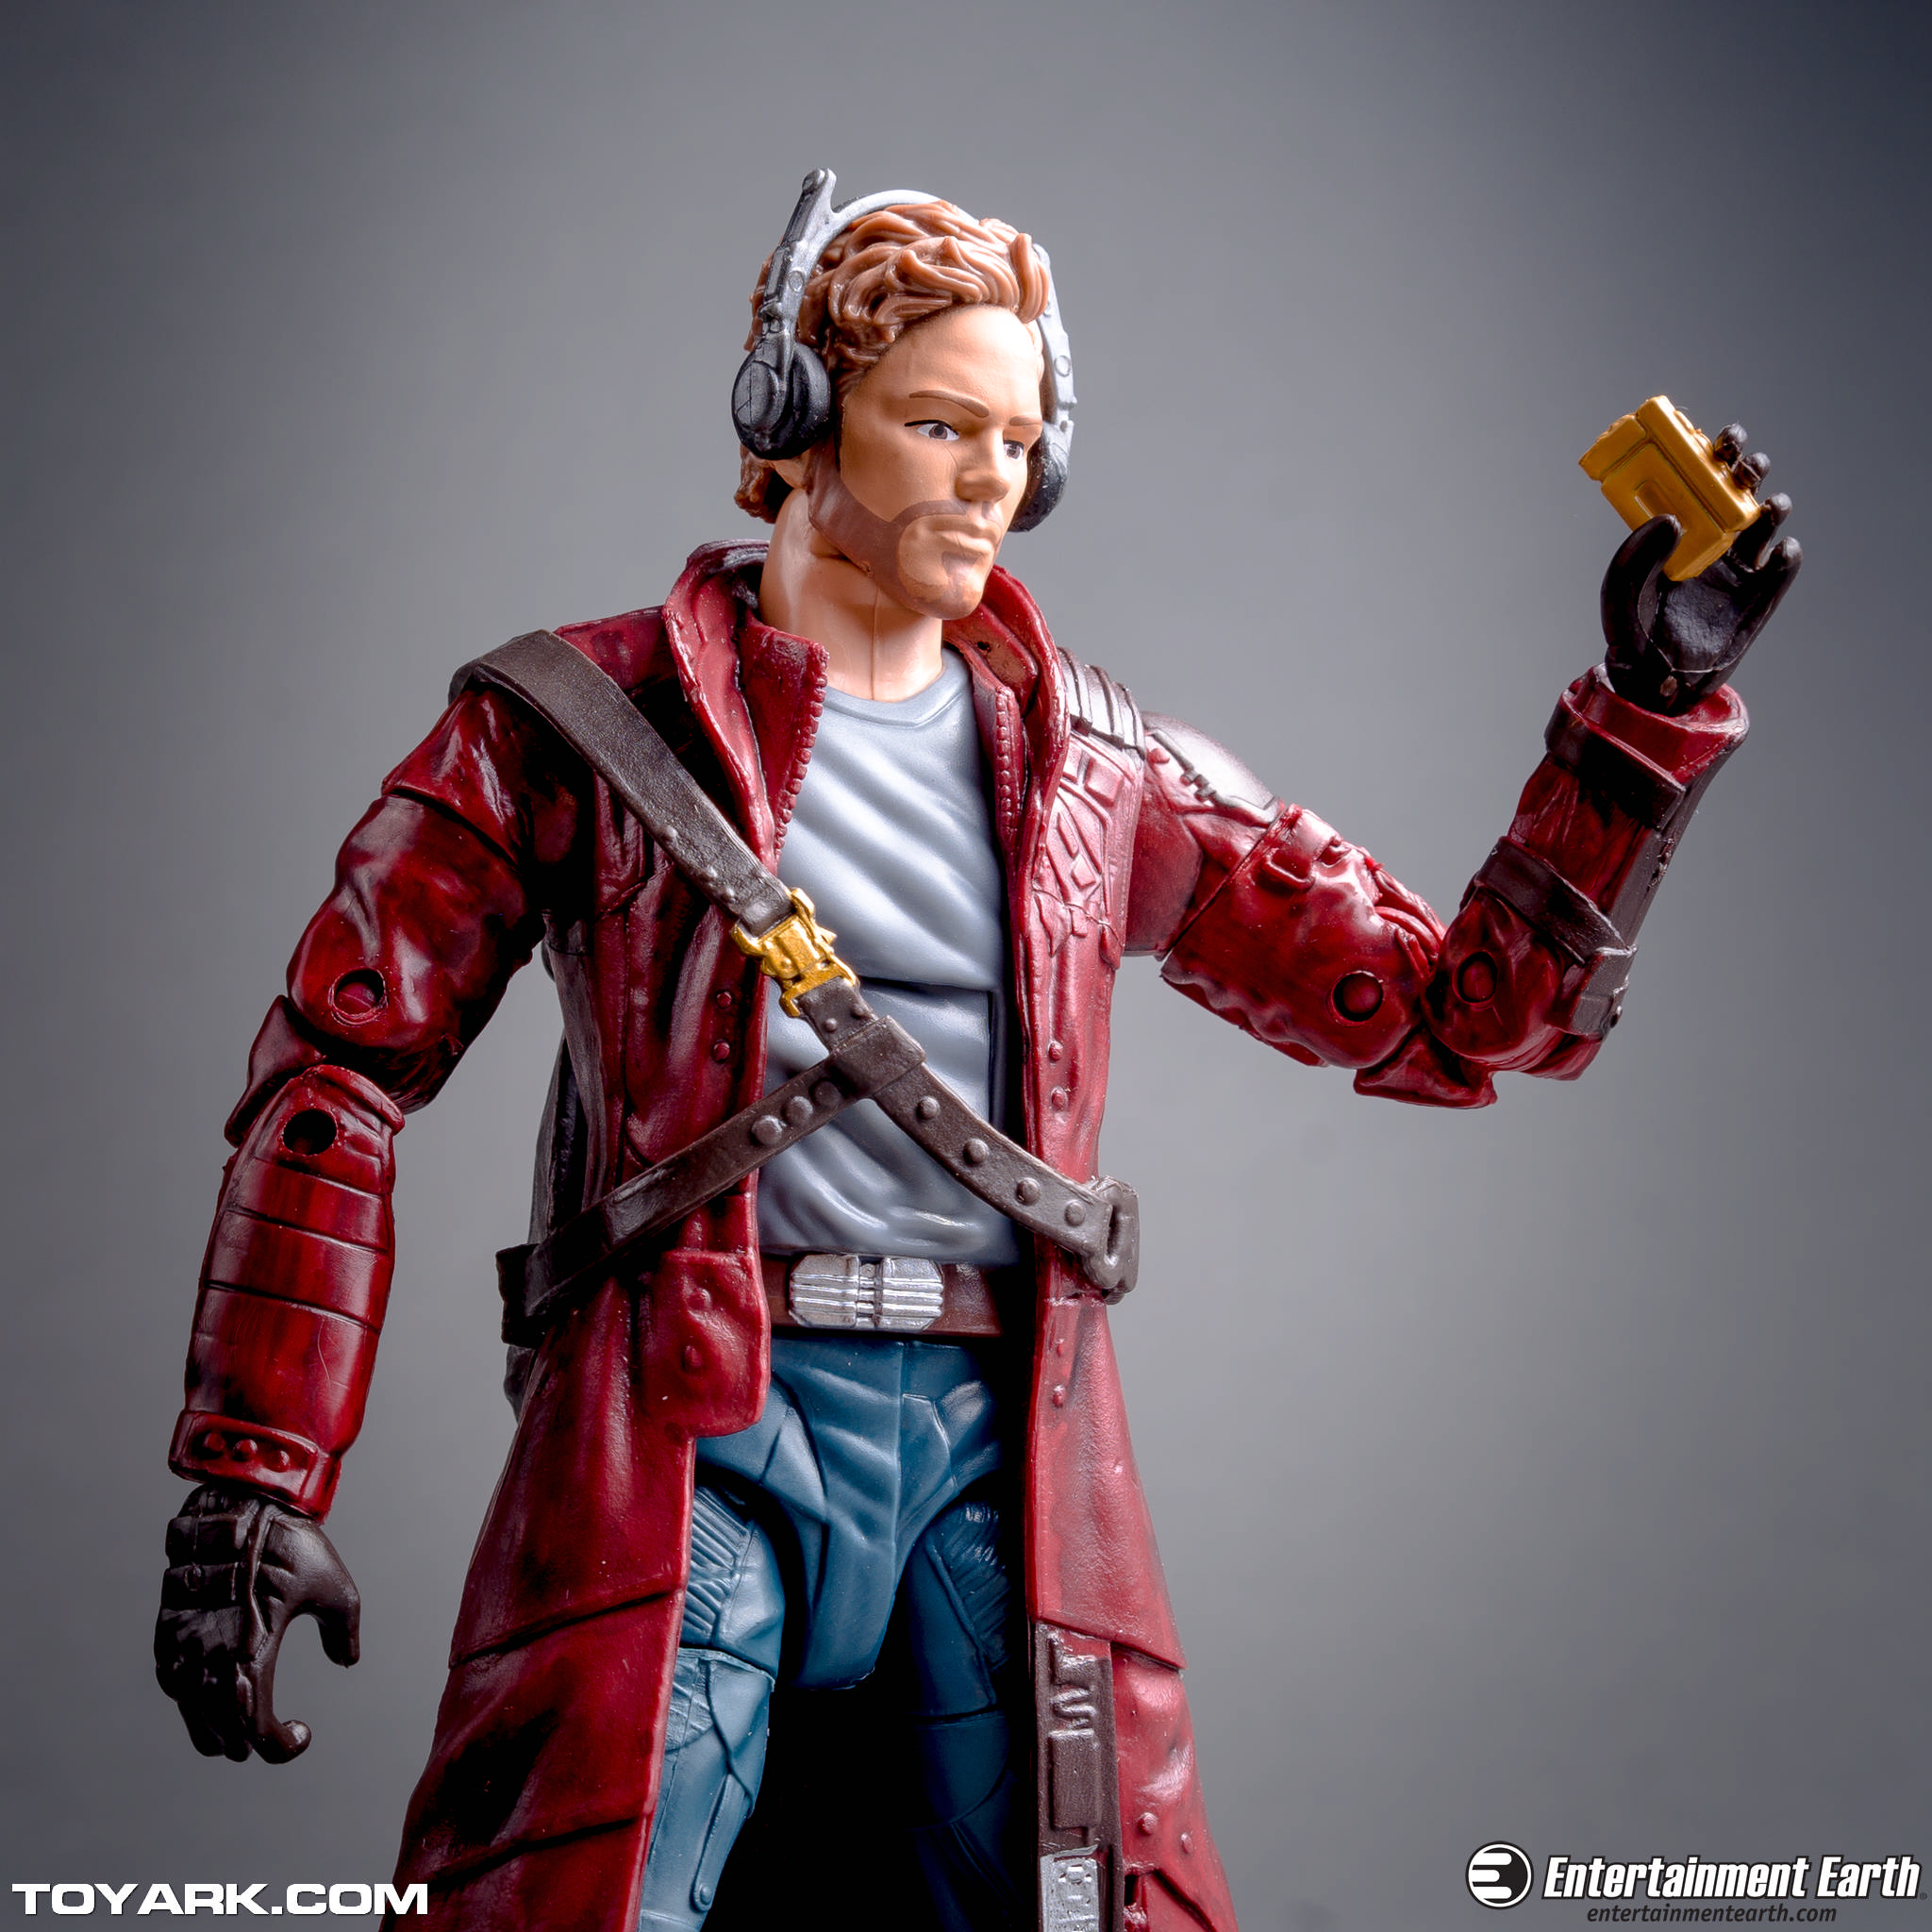 Star Lord rocking out!